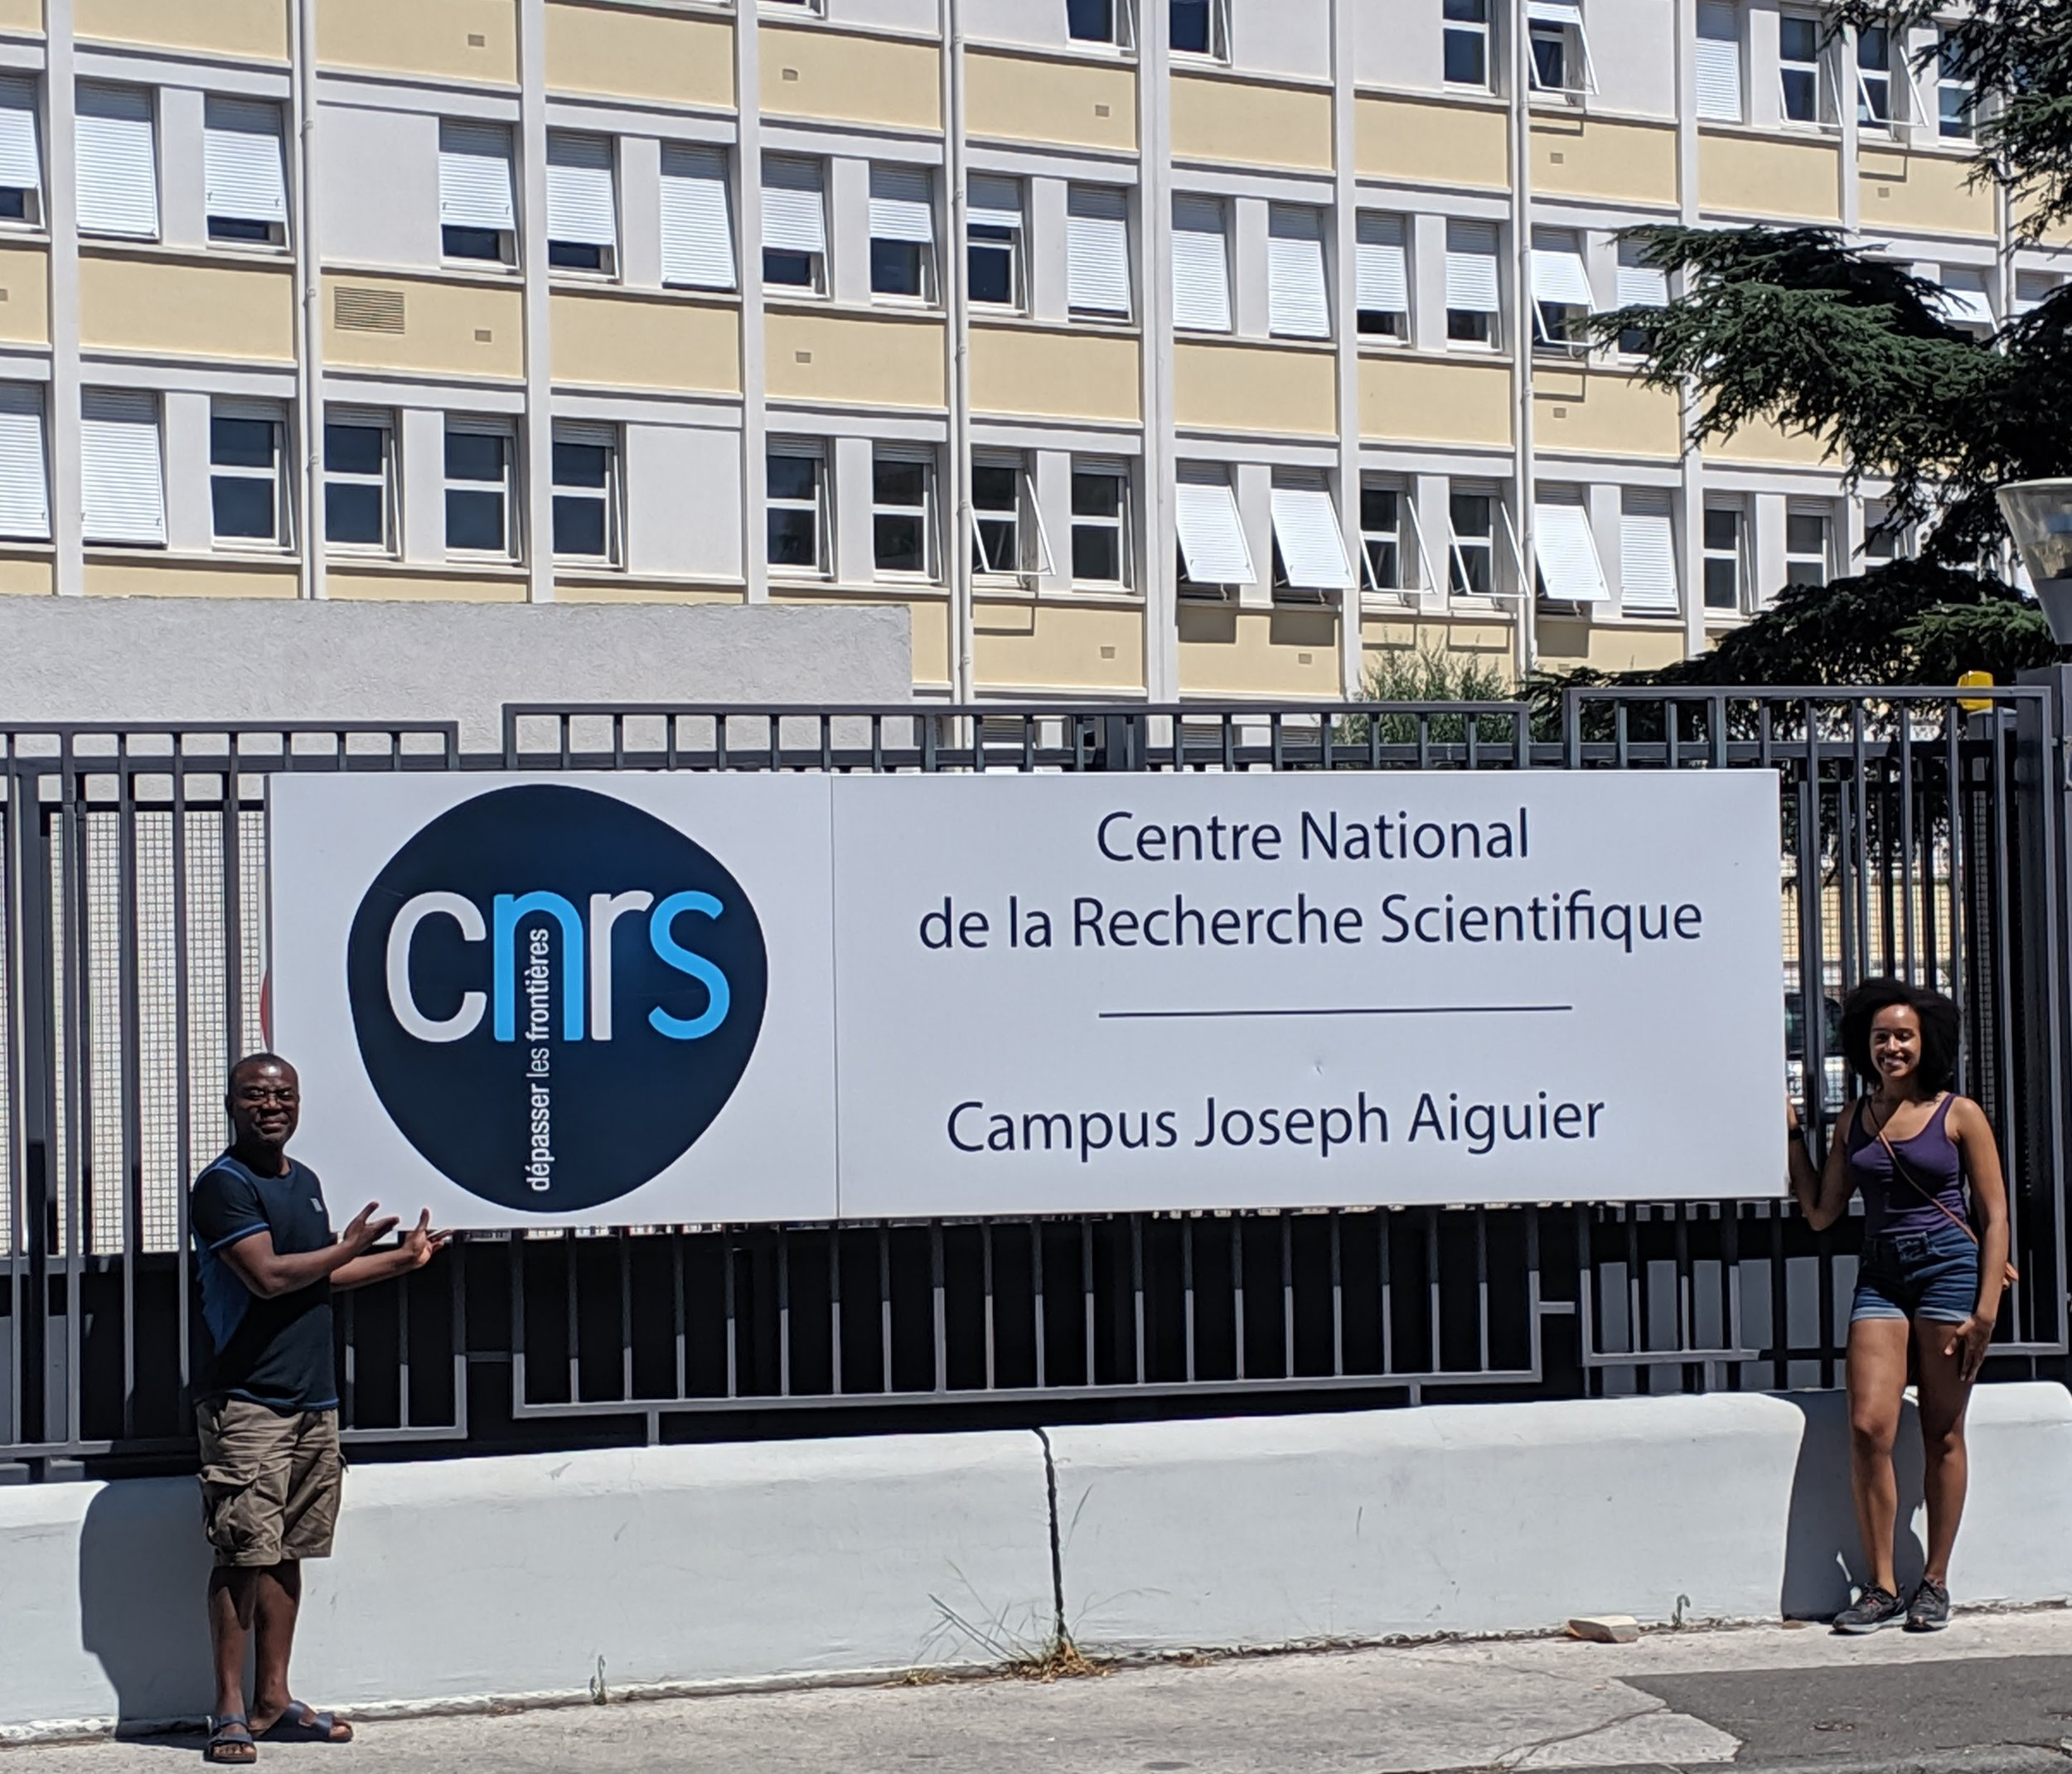 Erica will be spending six months beginning July 2019 at the Centre National de la Recherche Scientifique in Marseille, France. She will work with Dr. Emmanuel Talla and use bioinformatic tools to examine microbial community structure in experiments geared towards biologically removing nitrate from small community drinking water systems. This project is supported by the Chateaubriand Fellowship Program ( https://www.chateaubriand-fellowship.org/ ).